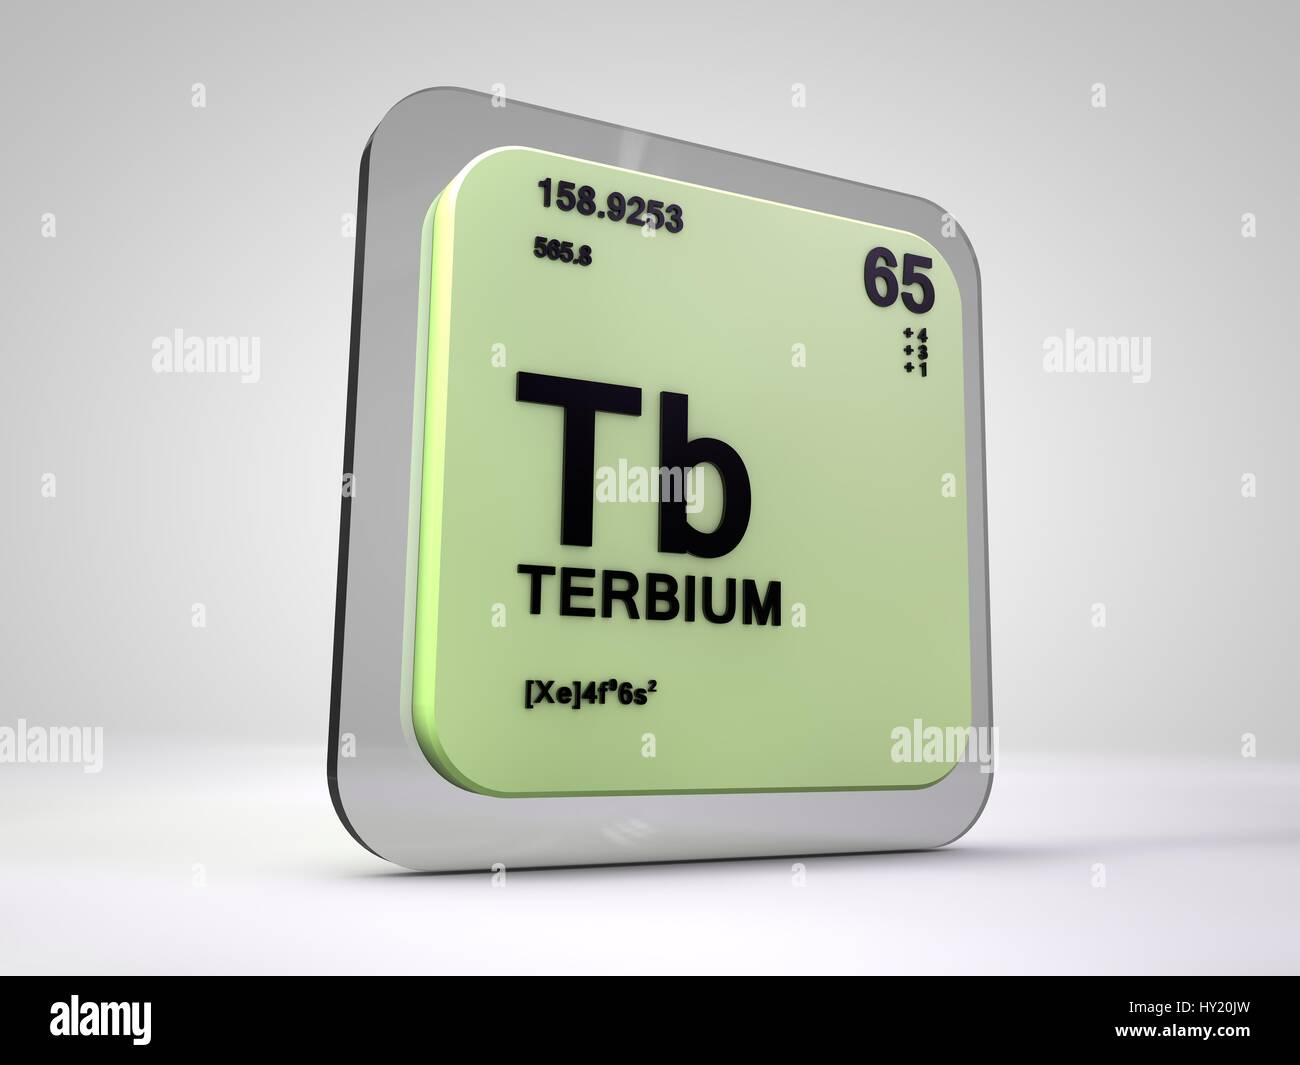 Periodic table chemical element stock photos periodic table terbium tb chemical element periodic table 3d render stock image ccuart Choice Image